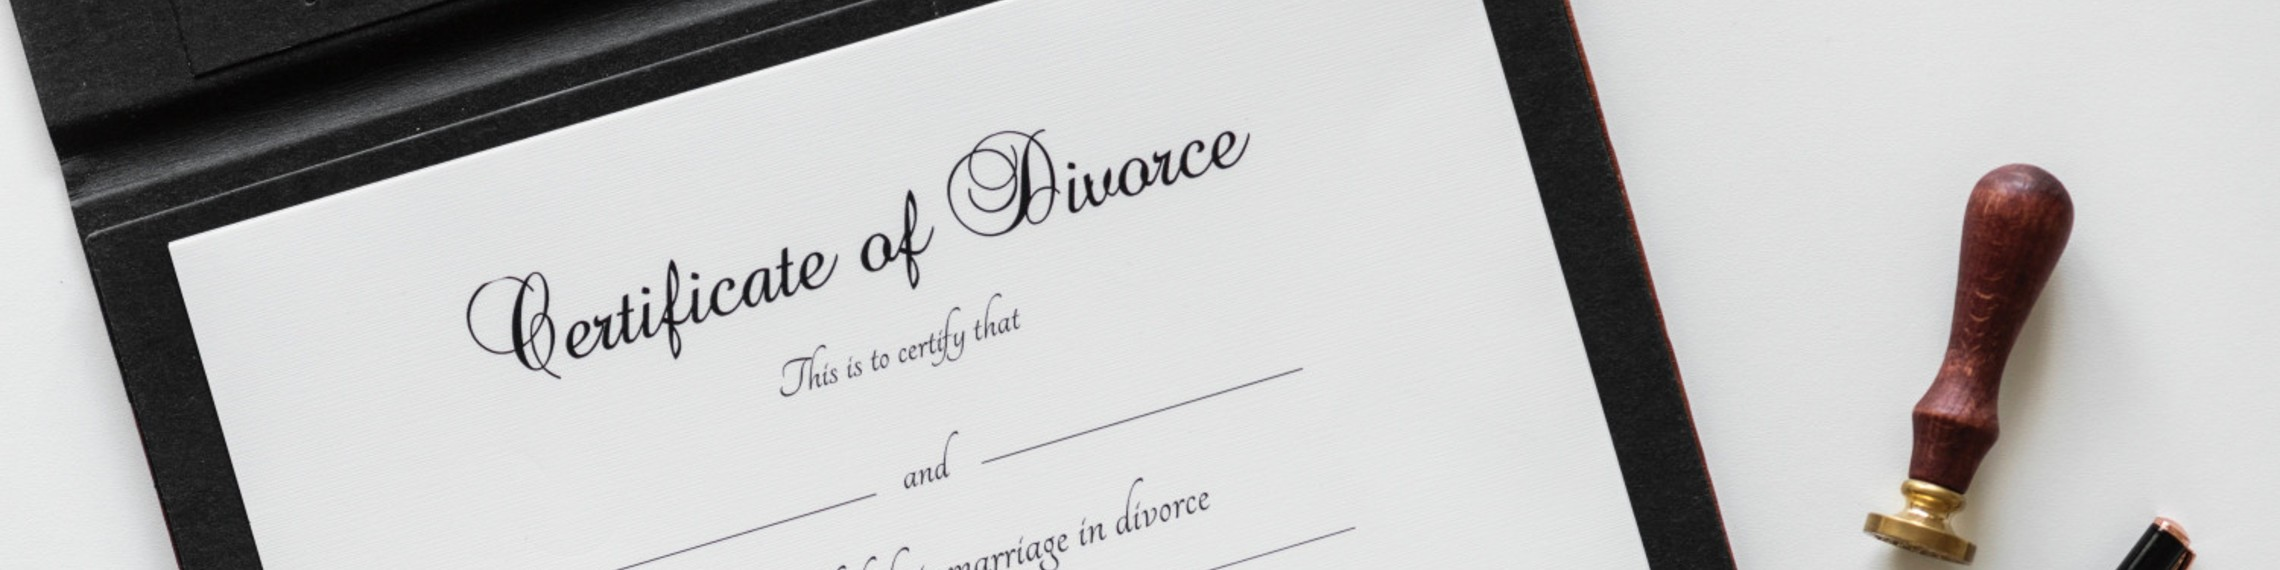 Certificate of Divorce image